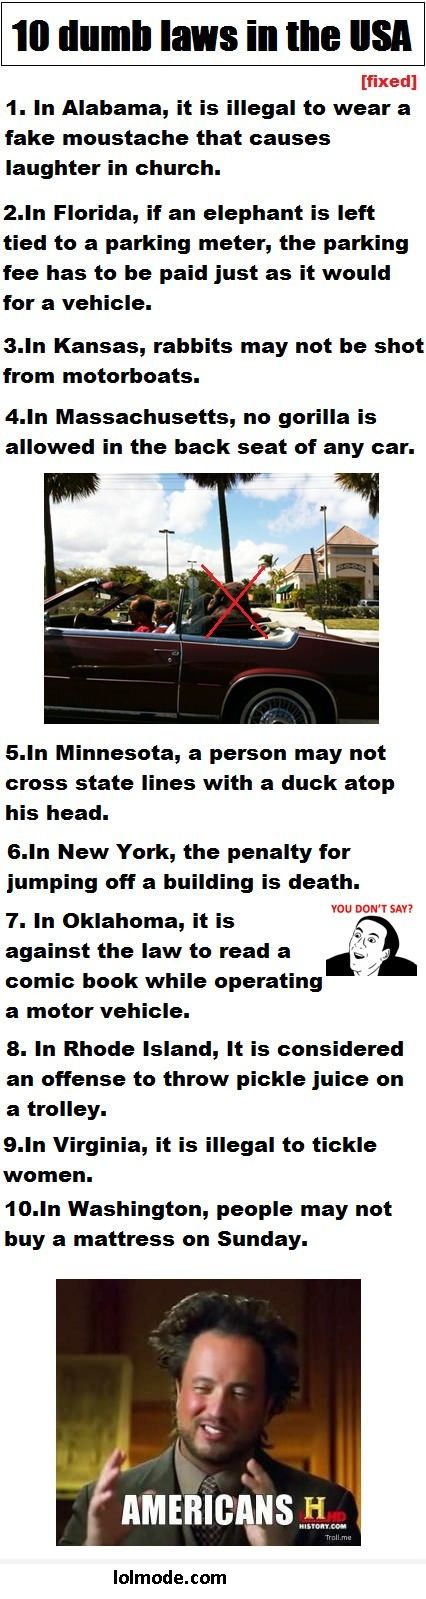 weird...you have to wonder how many times these things happened before it was necessary to make the laws